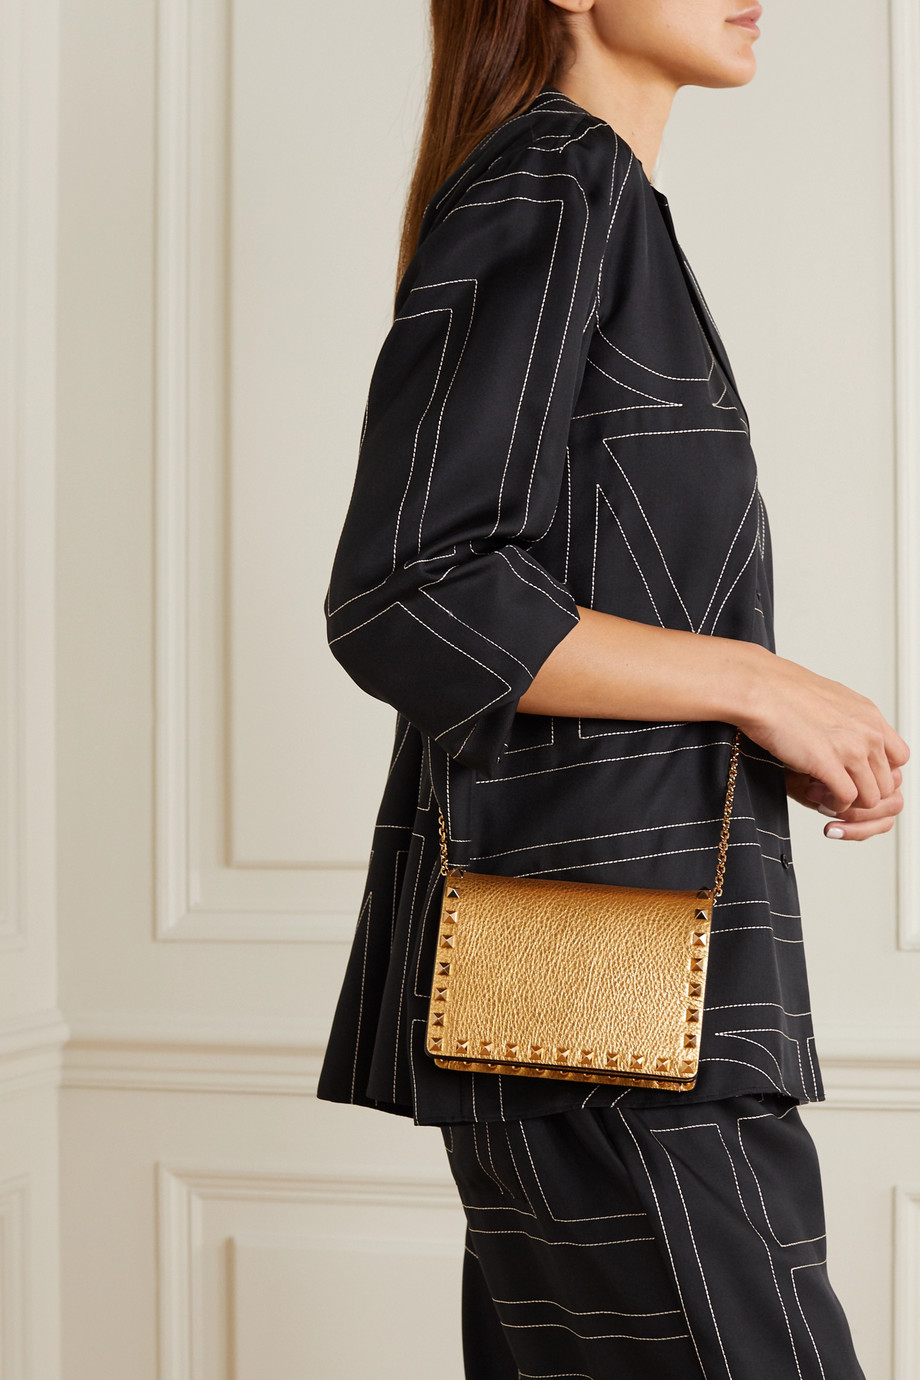 Valentino Valentino Garavani Rockstud metallic textured-leather shoulder bag